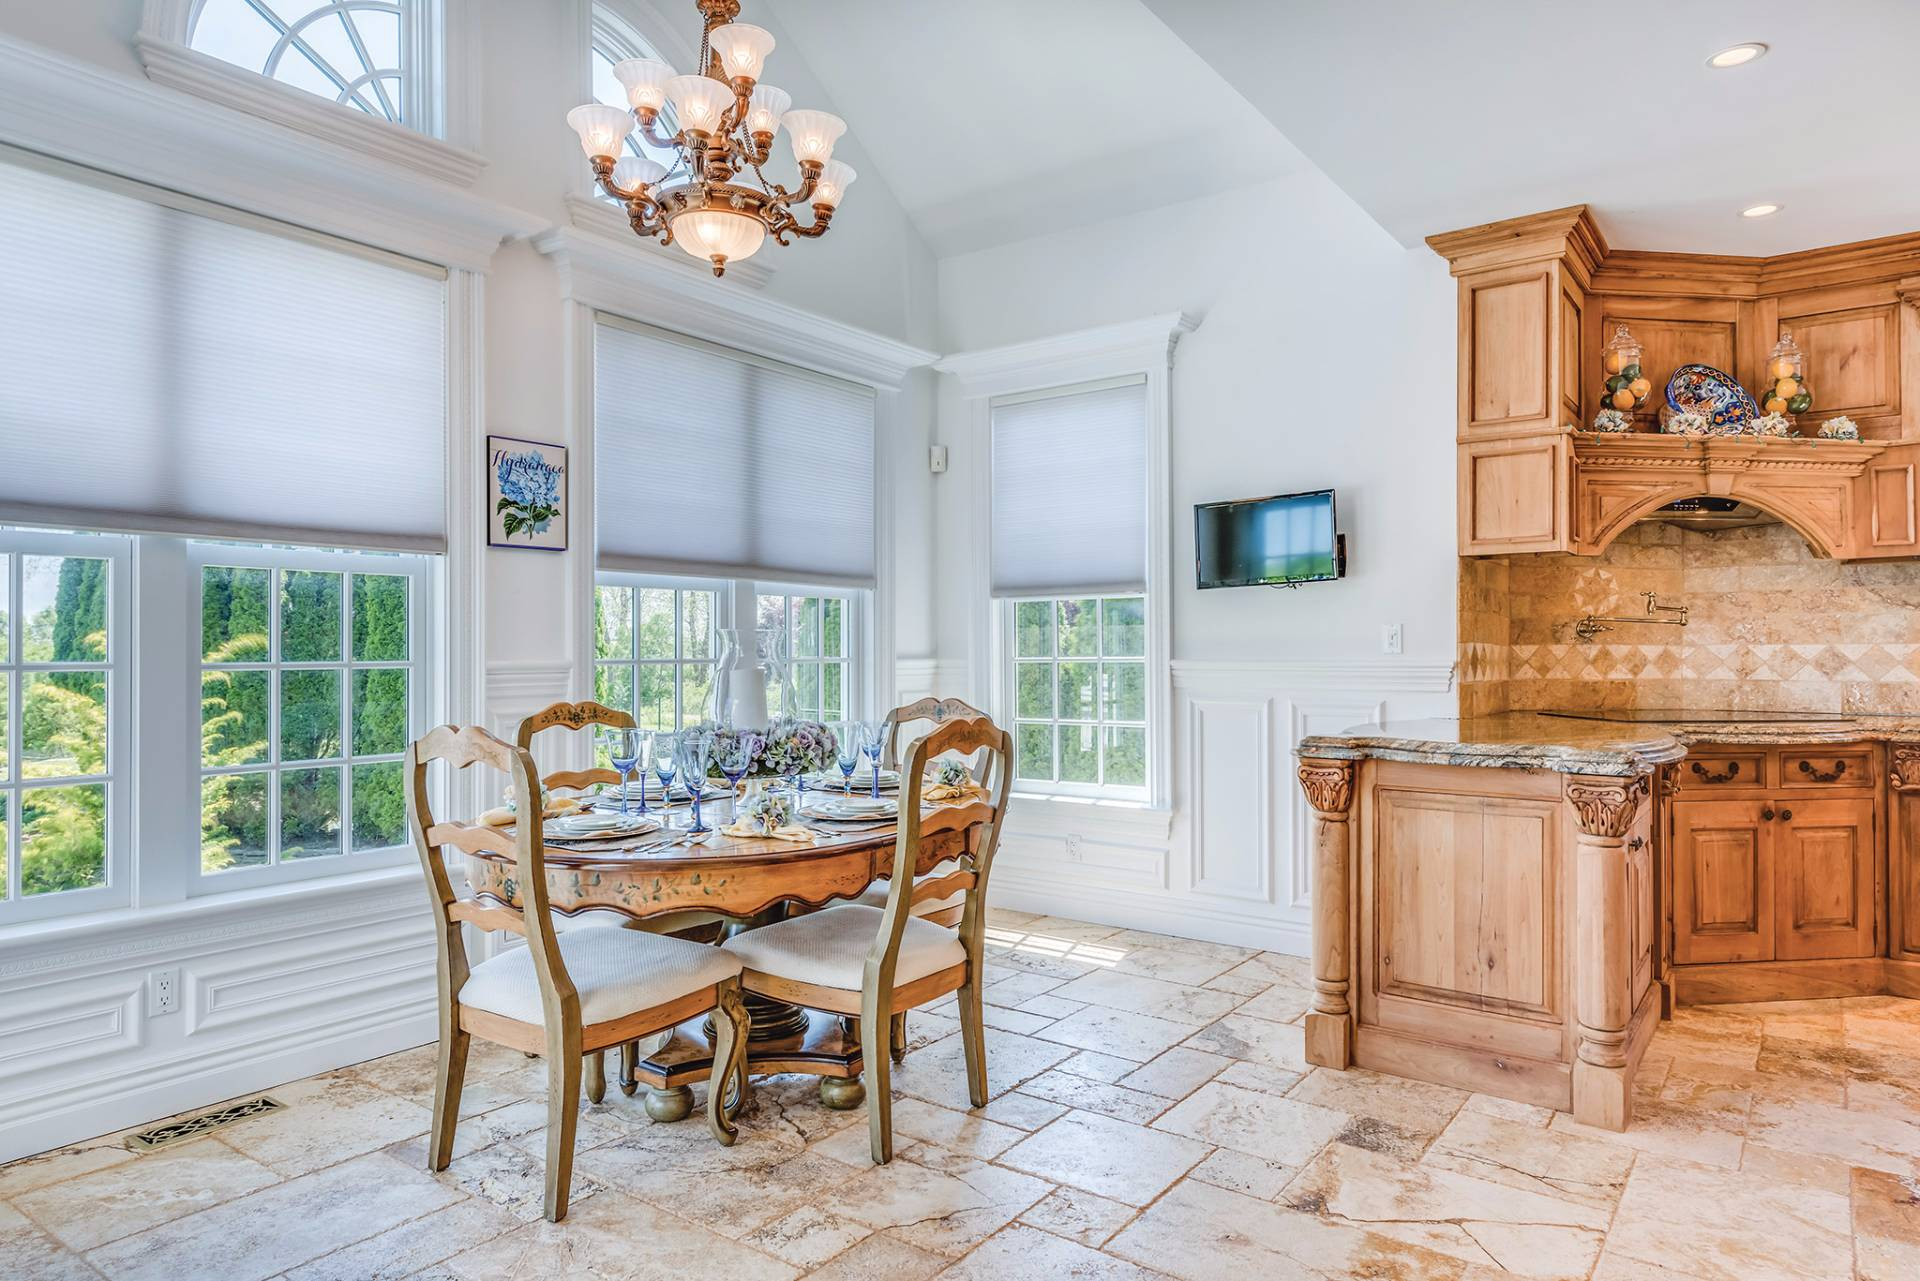 Additional photo for property listing at Water Mill Postmodern 24 Deer Run,  Water Mill, New York